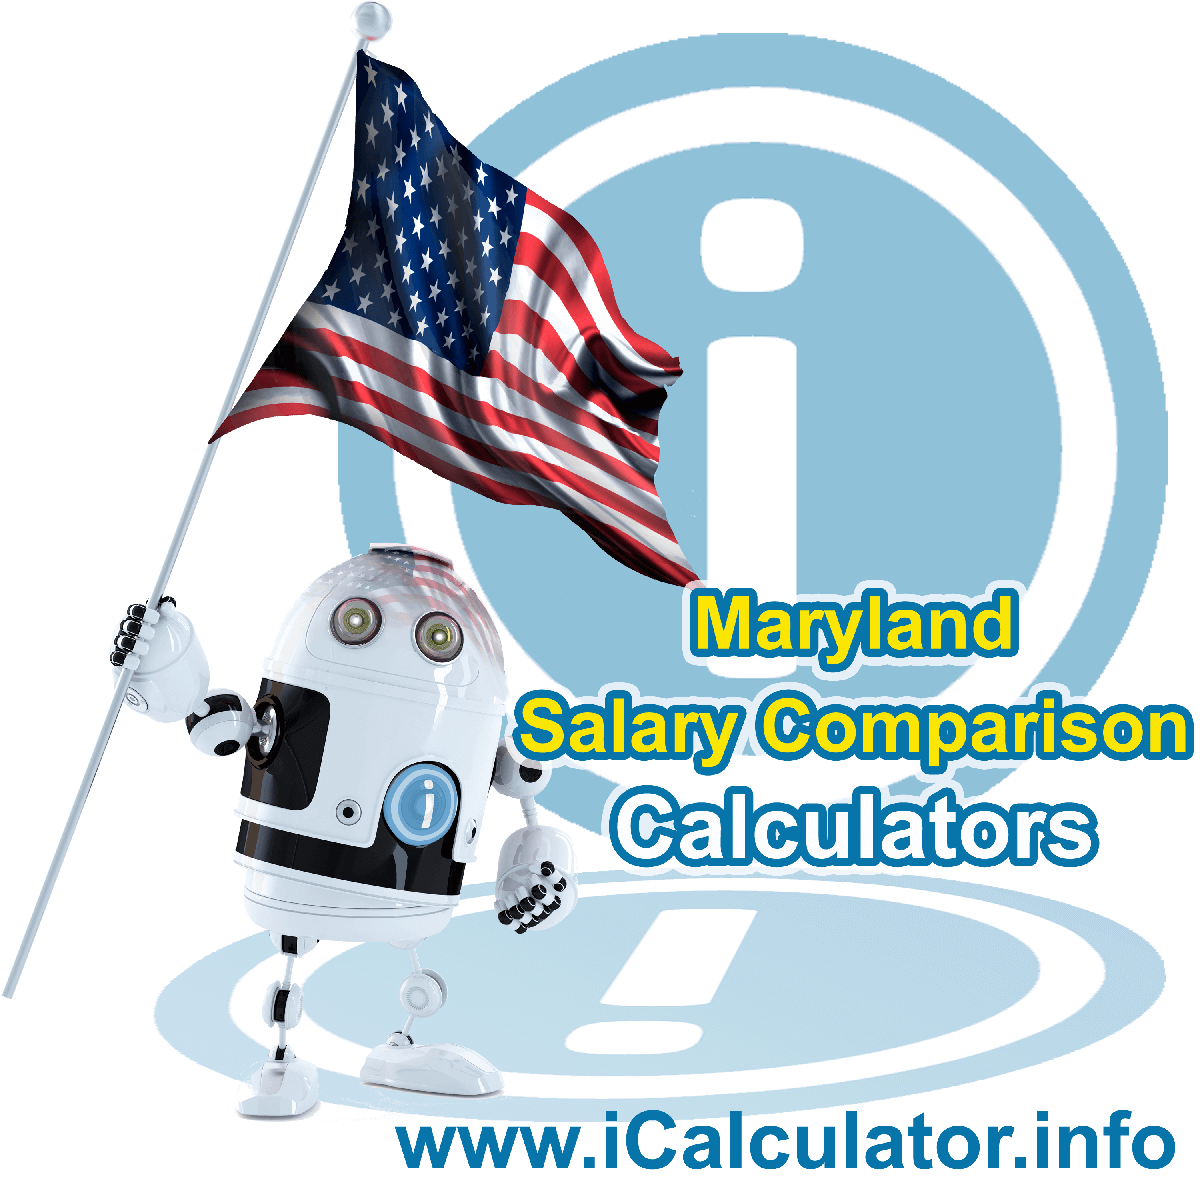 Maryland Salary Comparison Calculator 2020 | iCalculator | The Maryland Salary Comparison Calculator allows you to quickly calculate and compare upto 6 salaries in Maryland or between other states for the 2020 tax year and historical tax years. Its an excellent tool for jobseekers, pay raise comparison and comparison of salaries between different US States